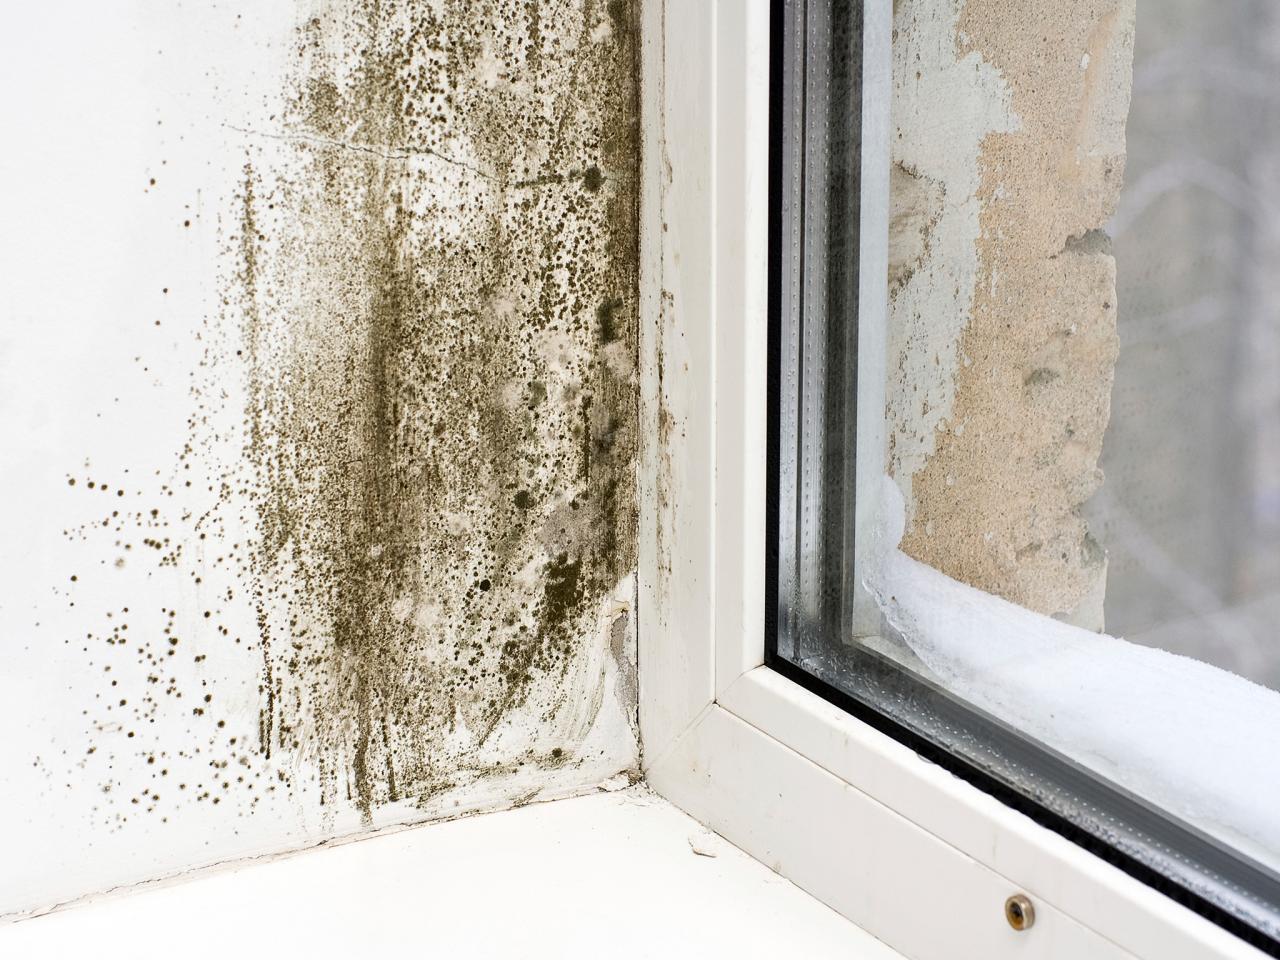 mon Areas for Mold Growth